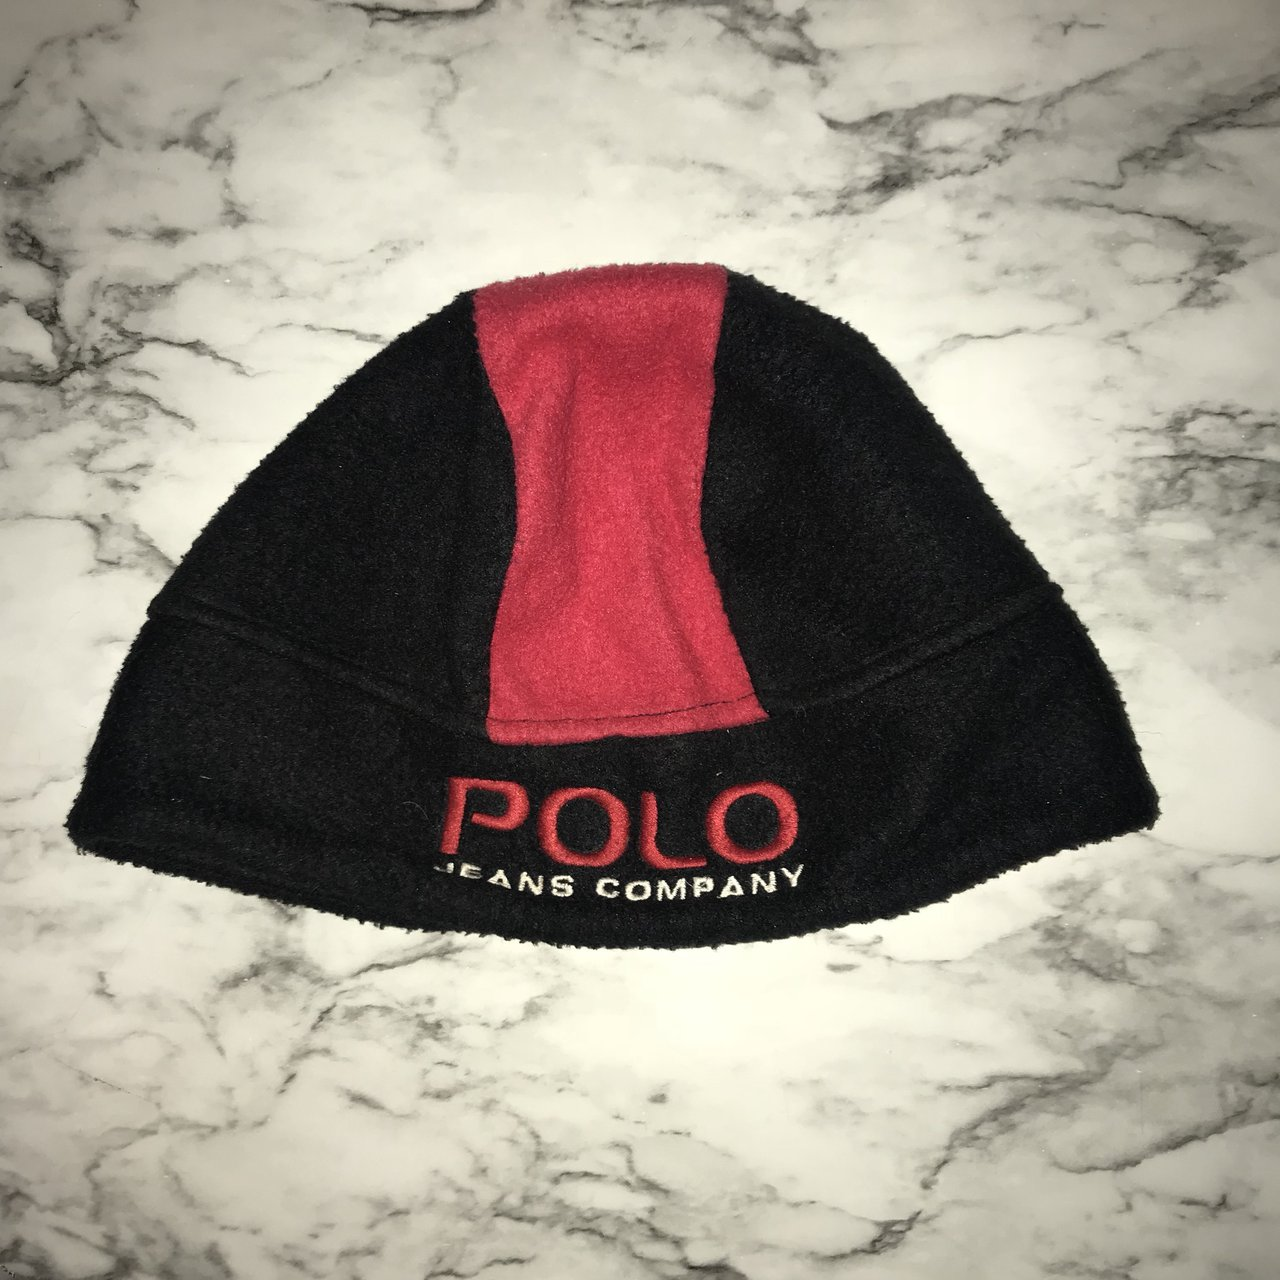 26806d7fe66 90 s Polo Ralph Lauren jeans winter hat One size fits all - Depop